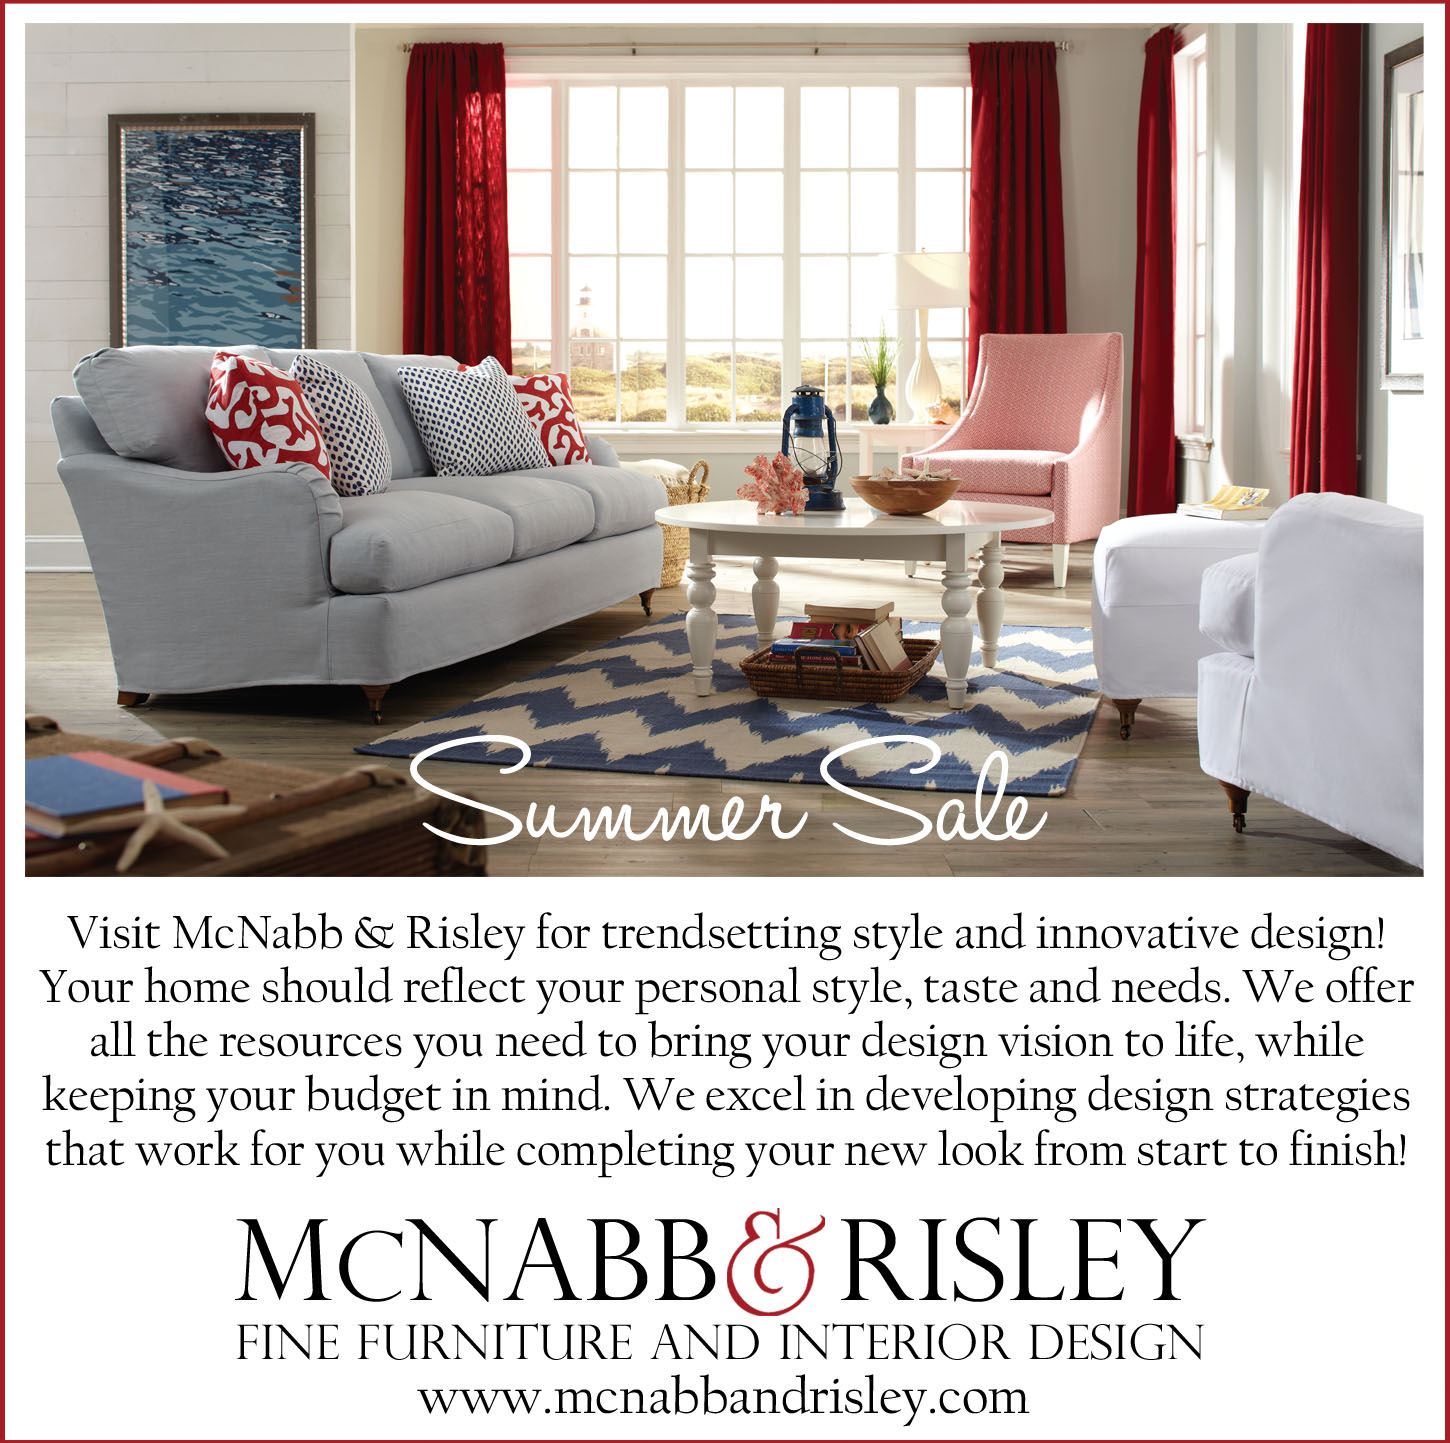 Only five days left to save! - McNabb & Risley